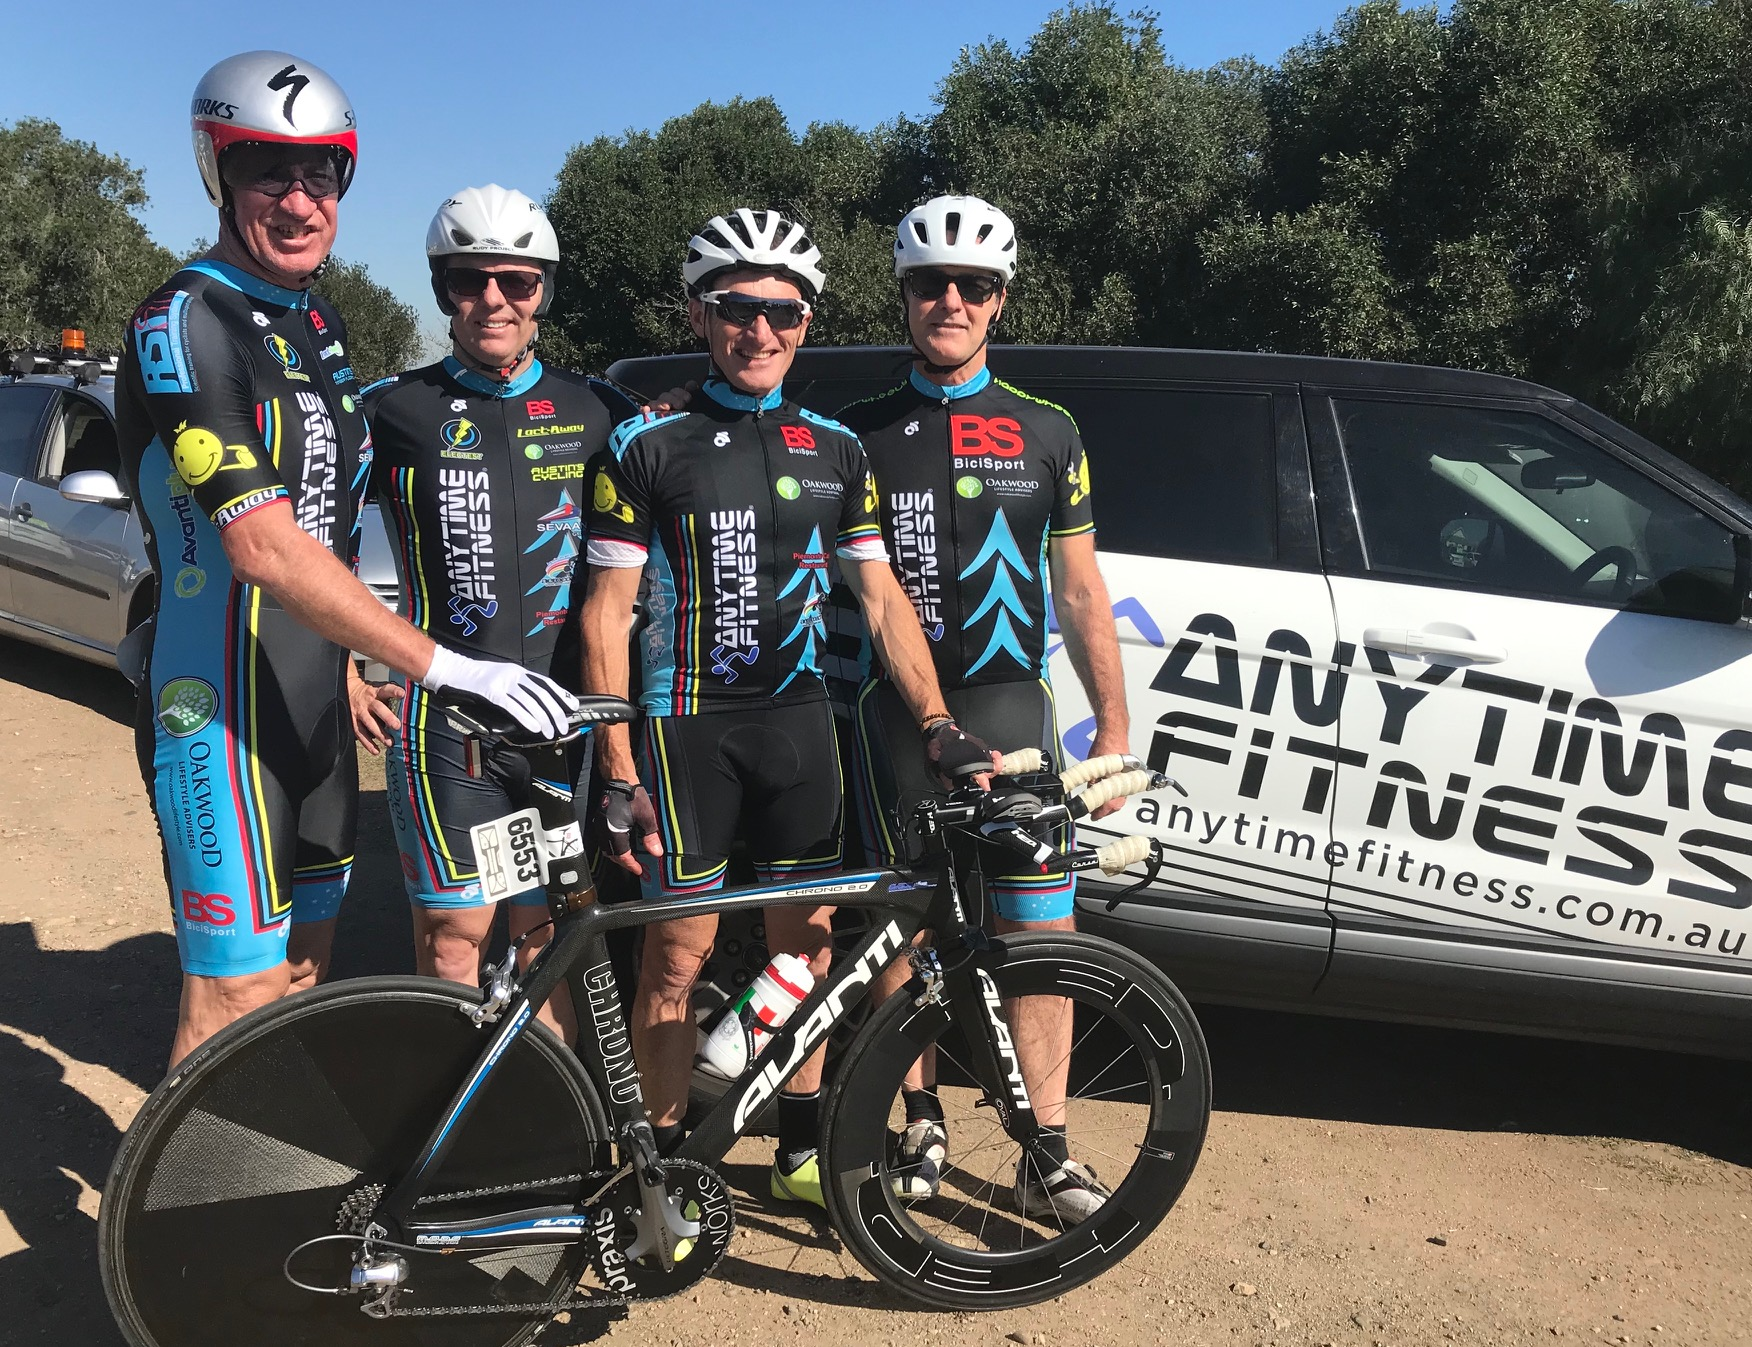 NSW Team Time Trial @ 3 August - Len Groen, Davide van der Browne, Eric Dole (French Housewives Favourite) & Steve Holland. Davide was unlucky to puncture in the first 5k that ended his day.